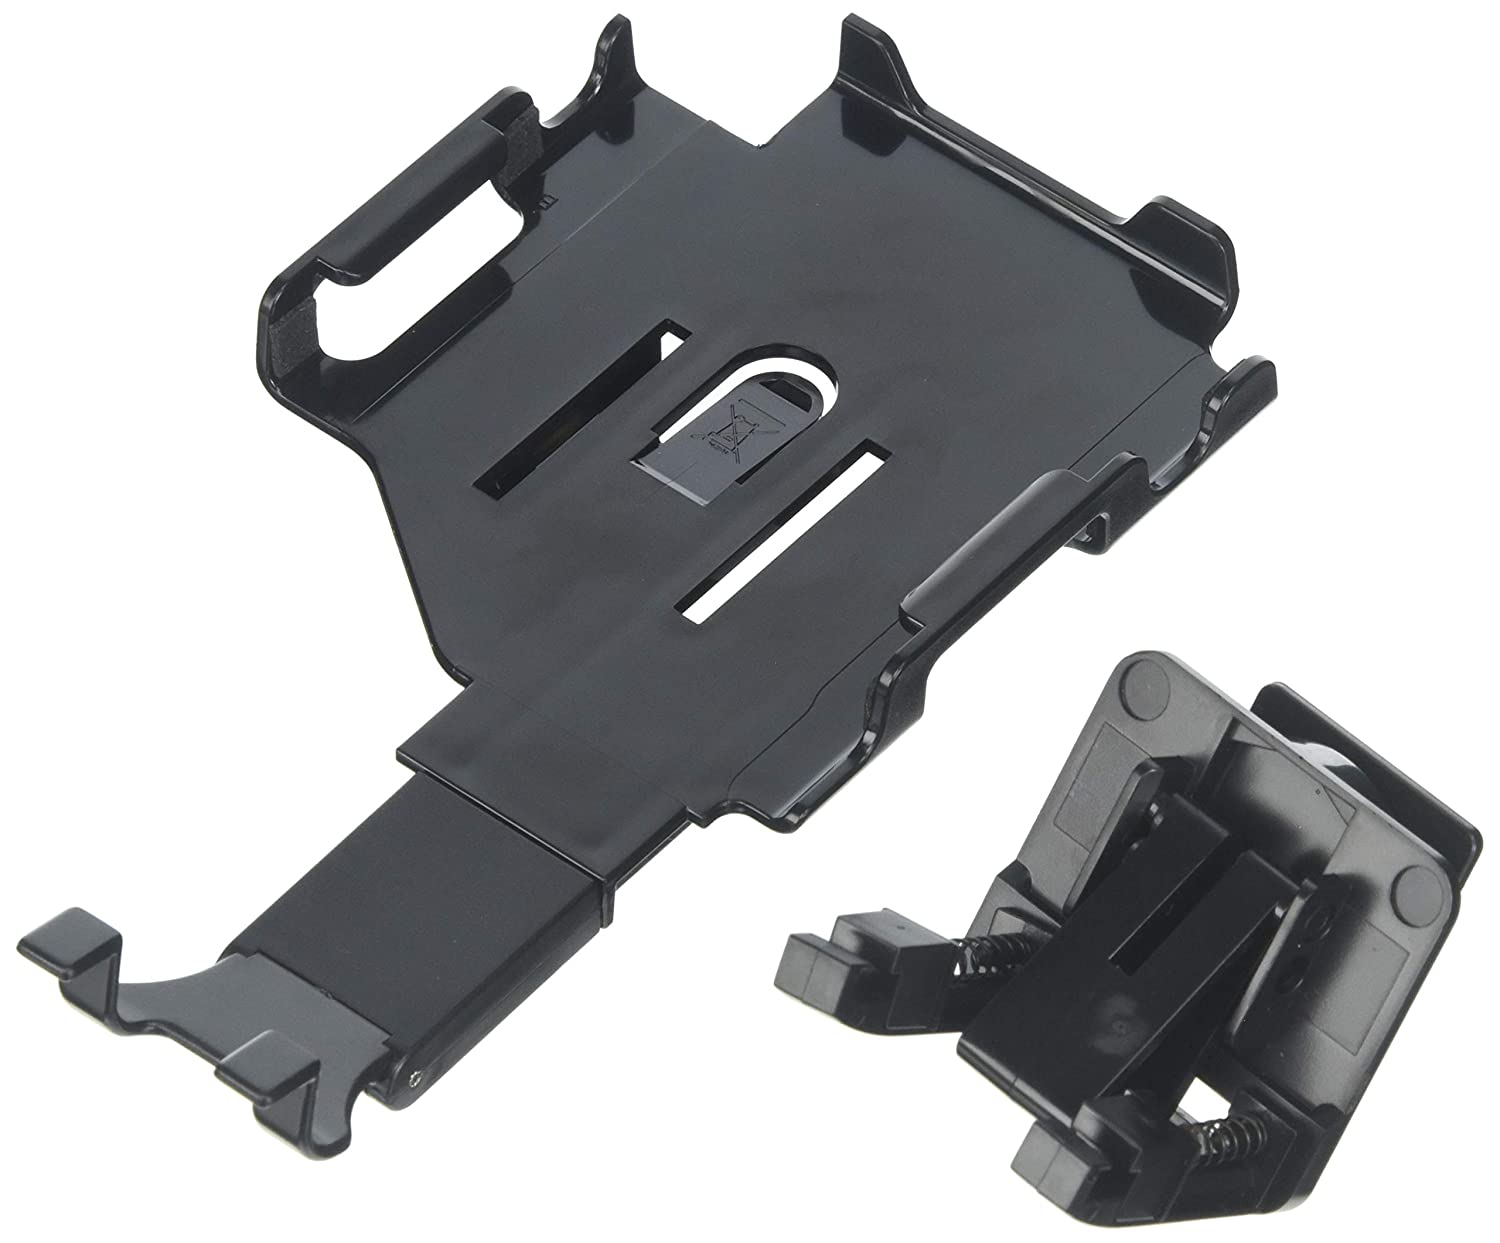 Fits All Carriers Black AMZ96508 - Retail Packaging Amzer Swiveling Air Vent Mount Holder for Samsung Galaxy Note 3 N9000